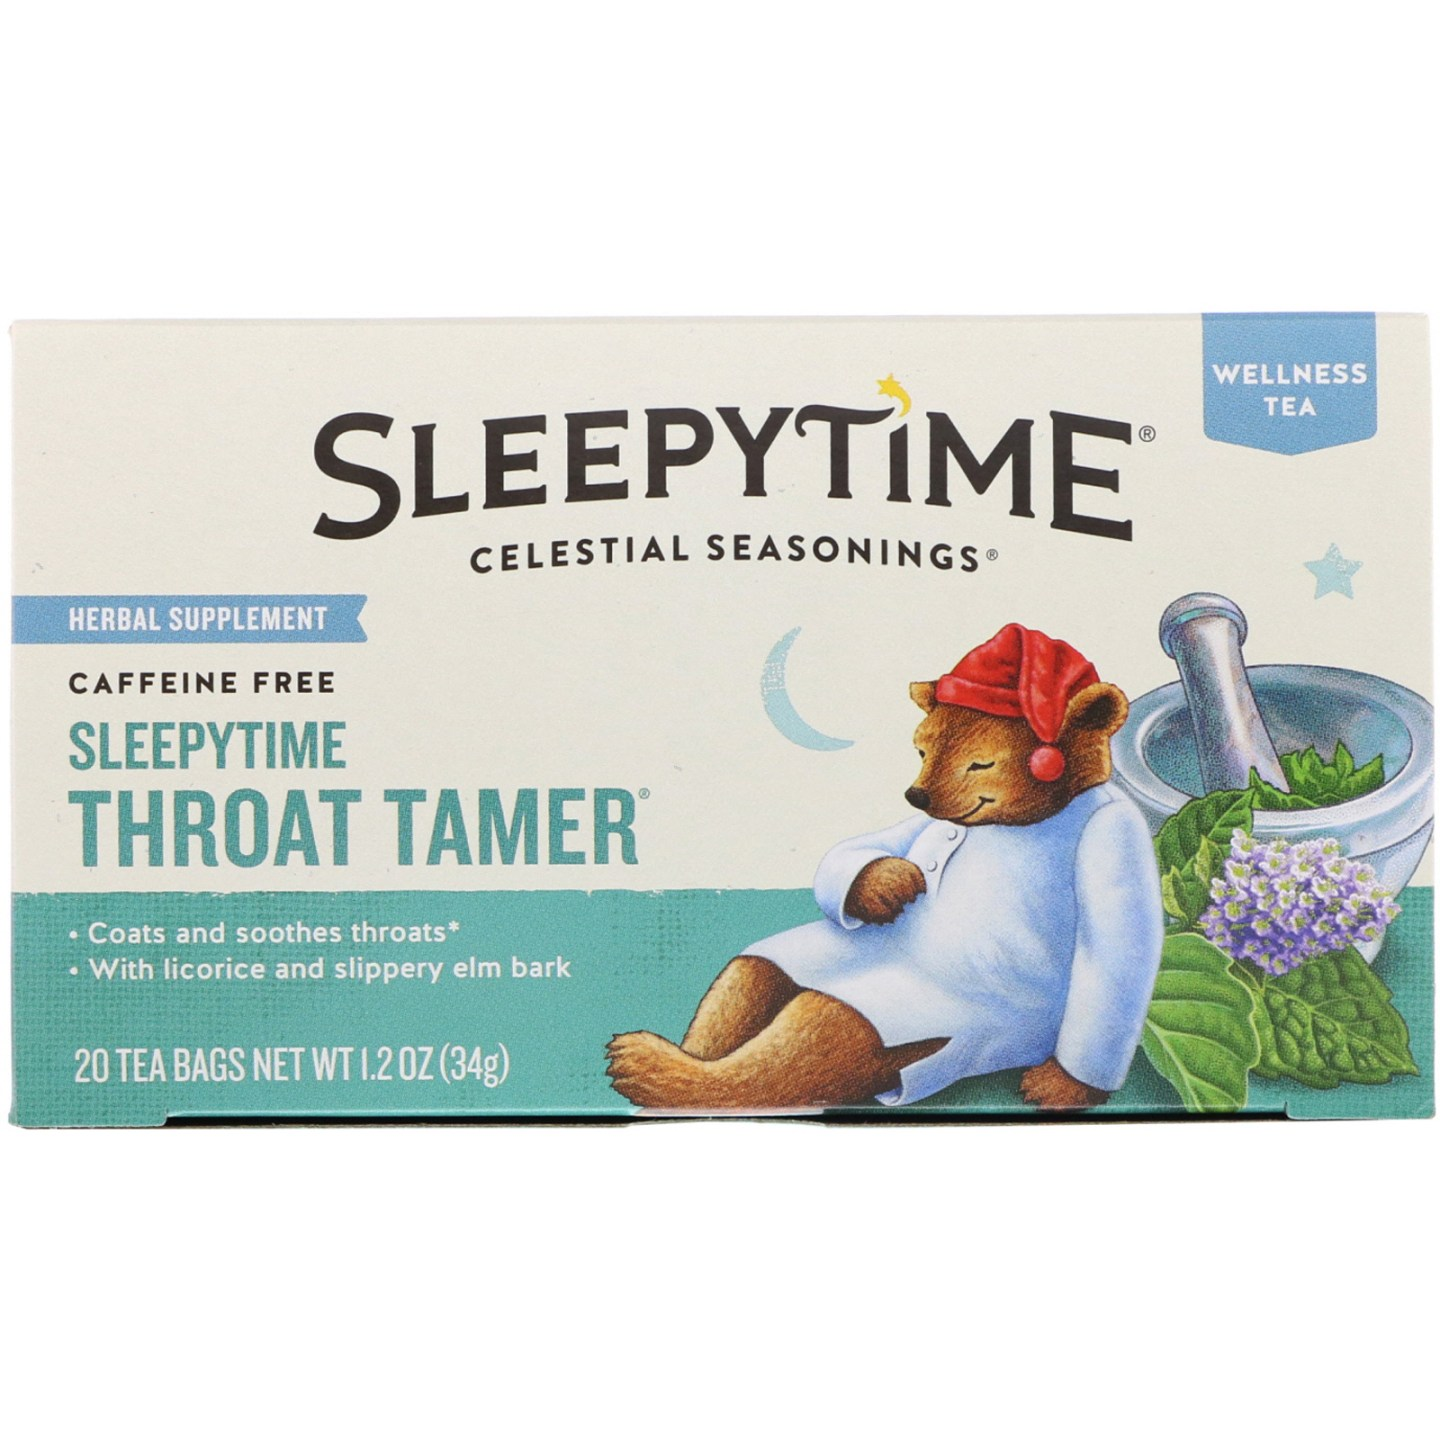 Celestial Seasonings Sleepytime Throat Tamer Tea